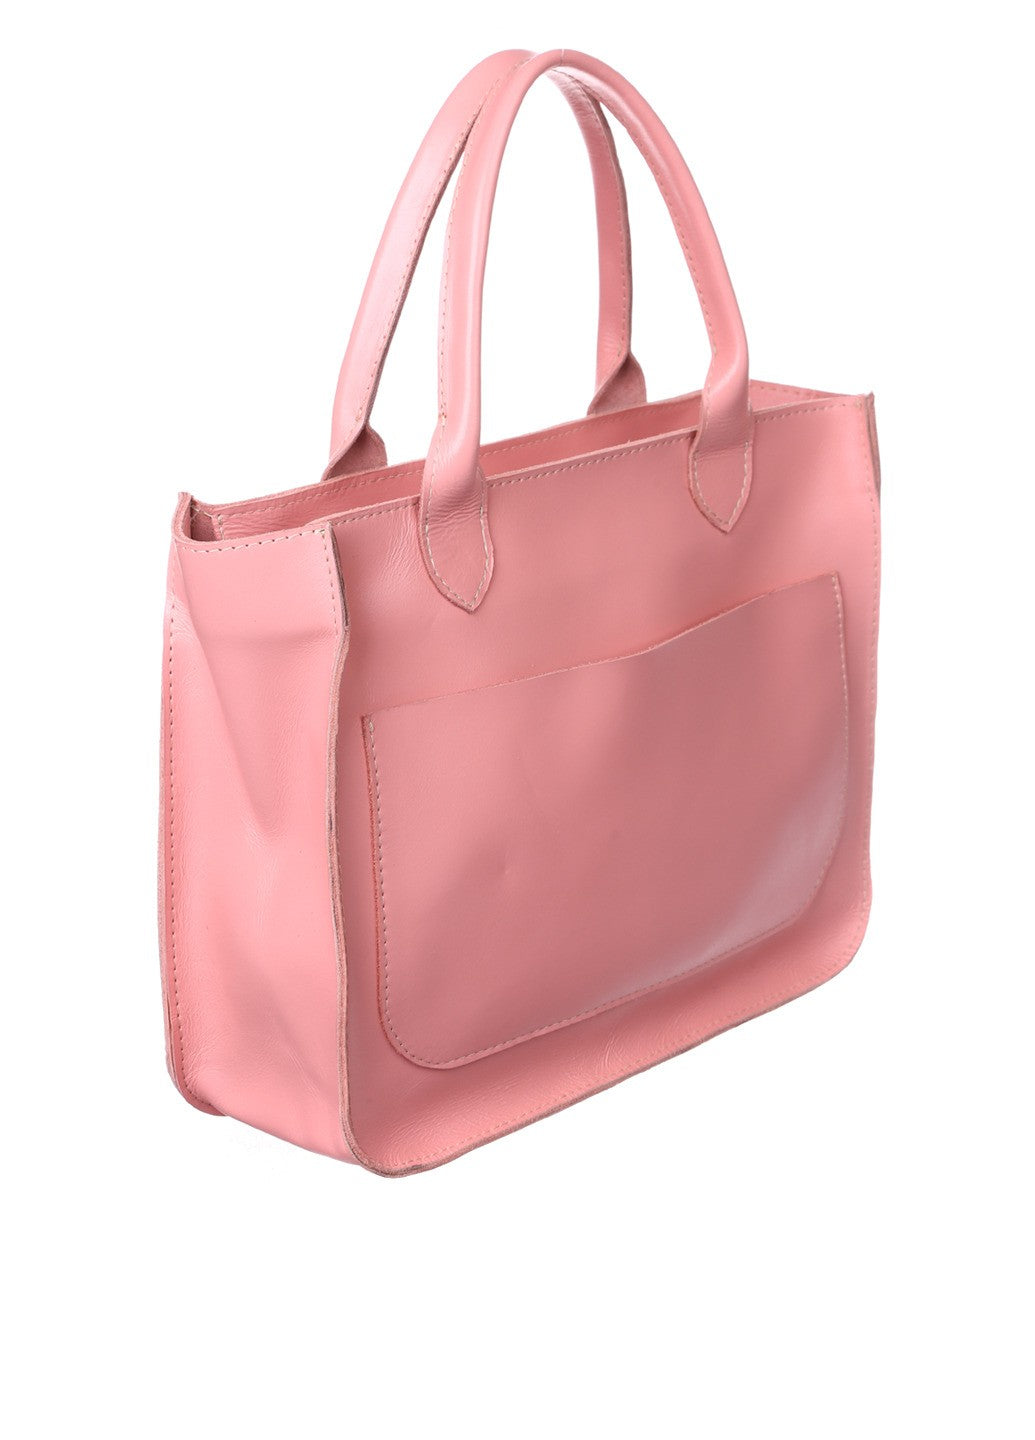 Leather pink tote - 1